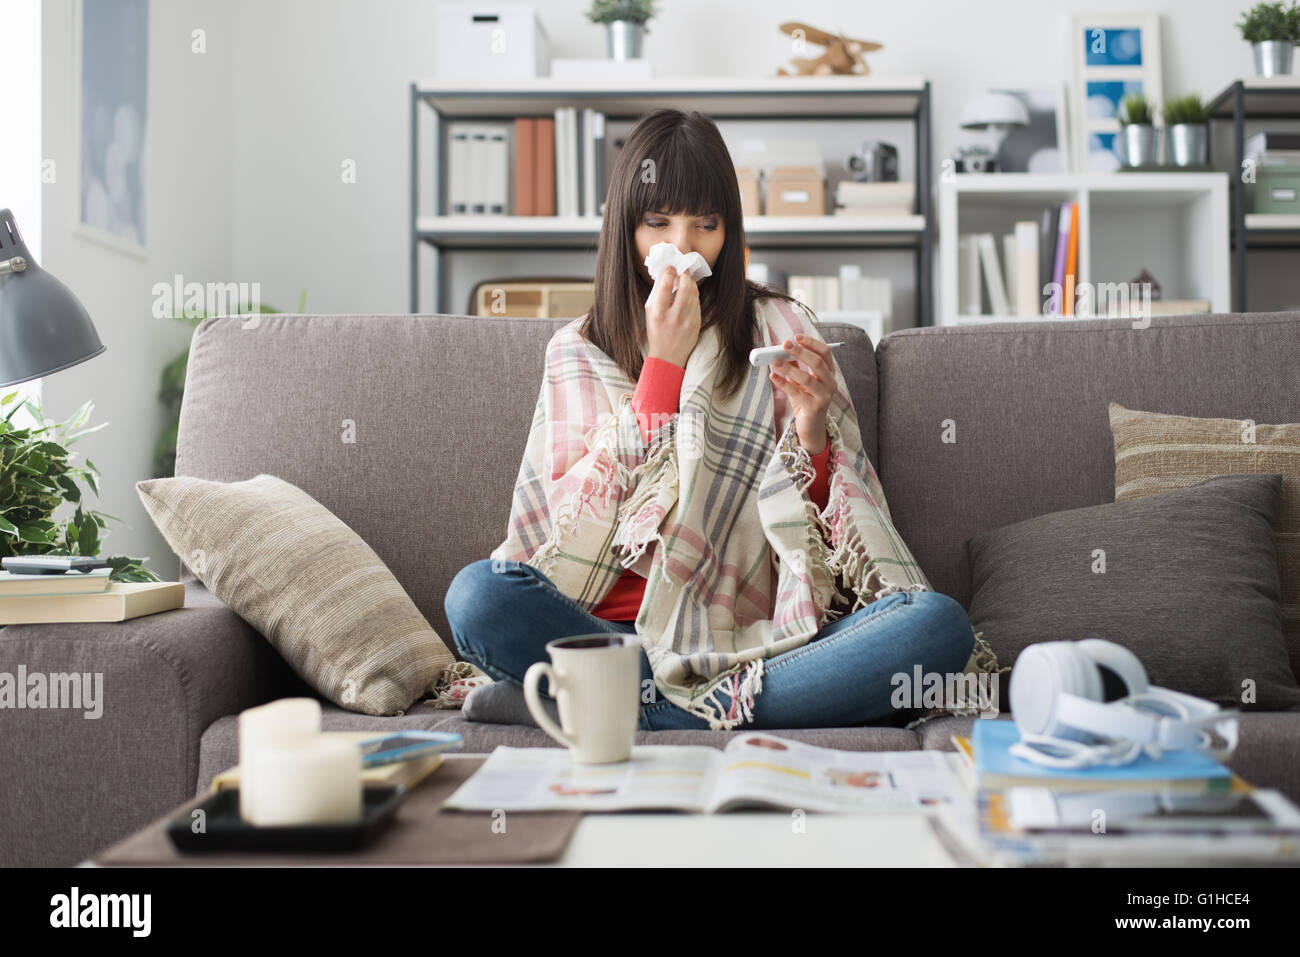 Sick woman with cold and flu, she is resting on the sofa at home and measuring body temperature with a thermometer - Stock Image